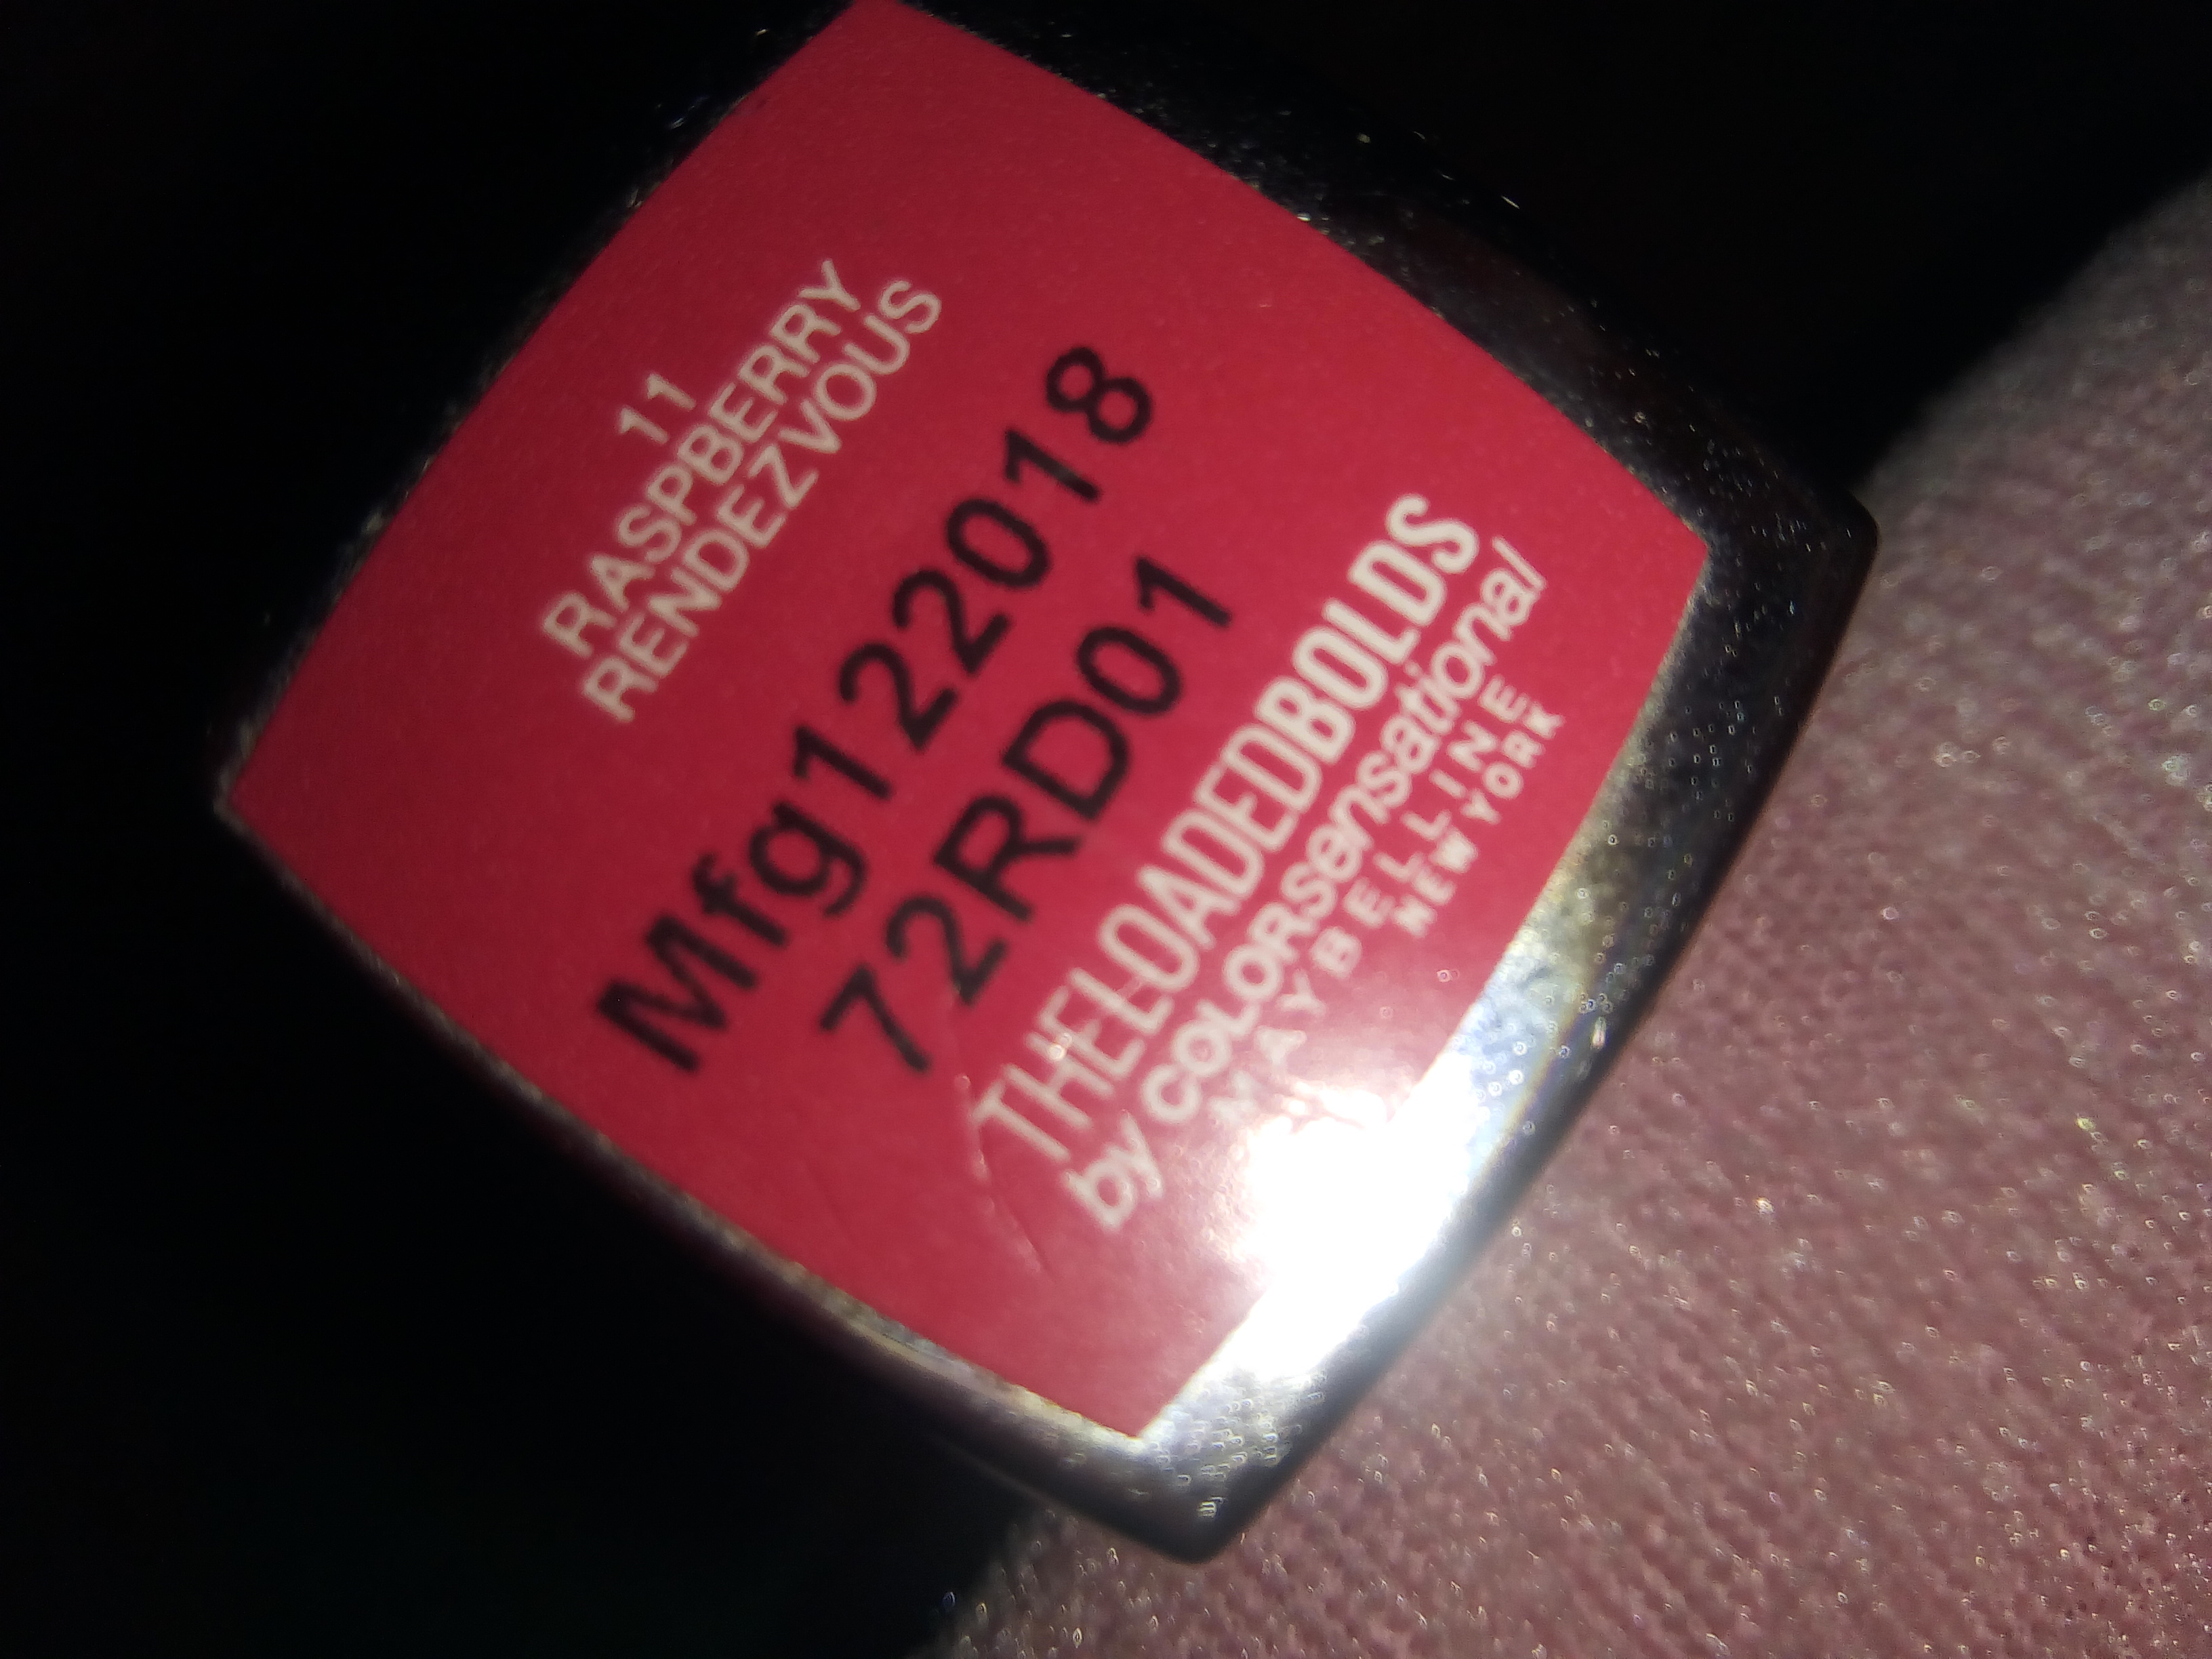 Maybelline Loaded Bolds Lipstick pic 1-Maybelline Loaded Bolds Lipstick-By aflyingsoul